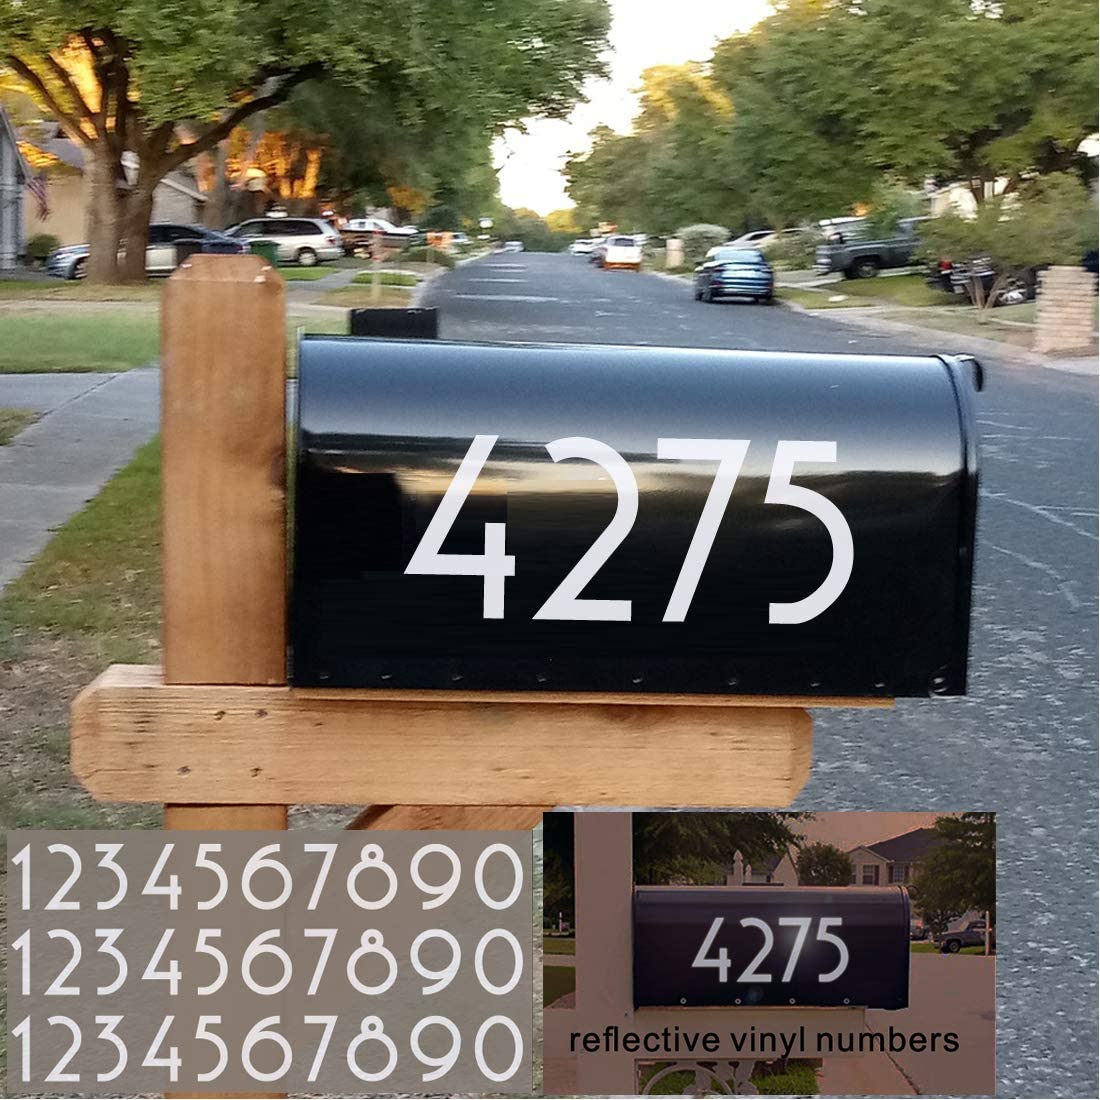 "Diggoo Reflective Mailbox Numbers Sticker Decal Die Cut Uzbek Style Vinyl Number 3"" Self Adhesive 3 Sets for Mailbox, Signs, Window, Door, Cars, Trucks, Home, Business, Address Number"